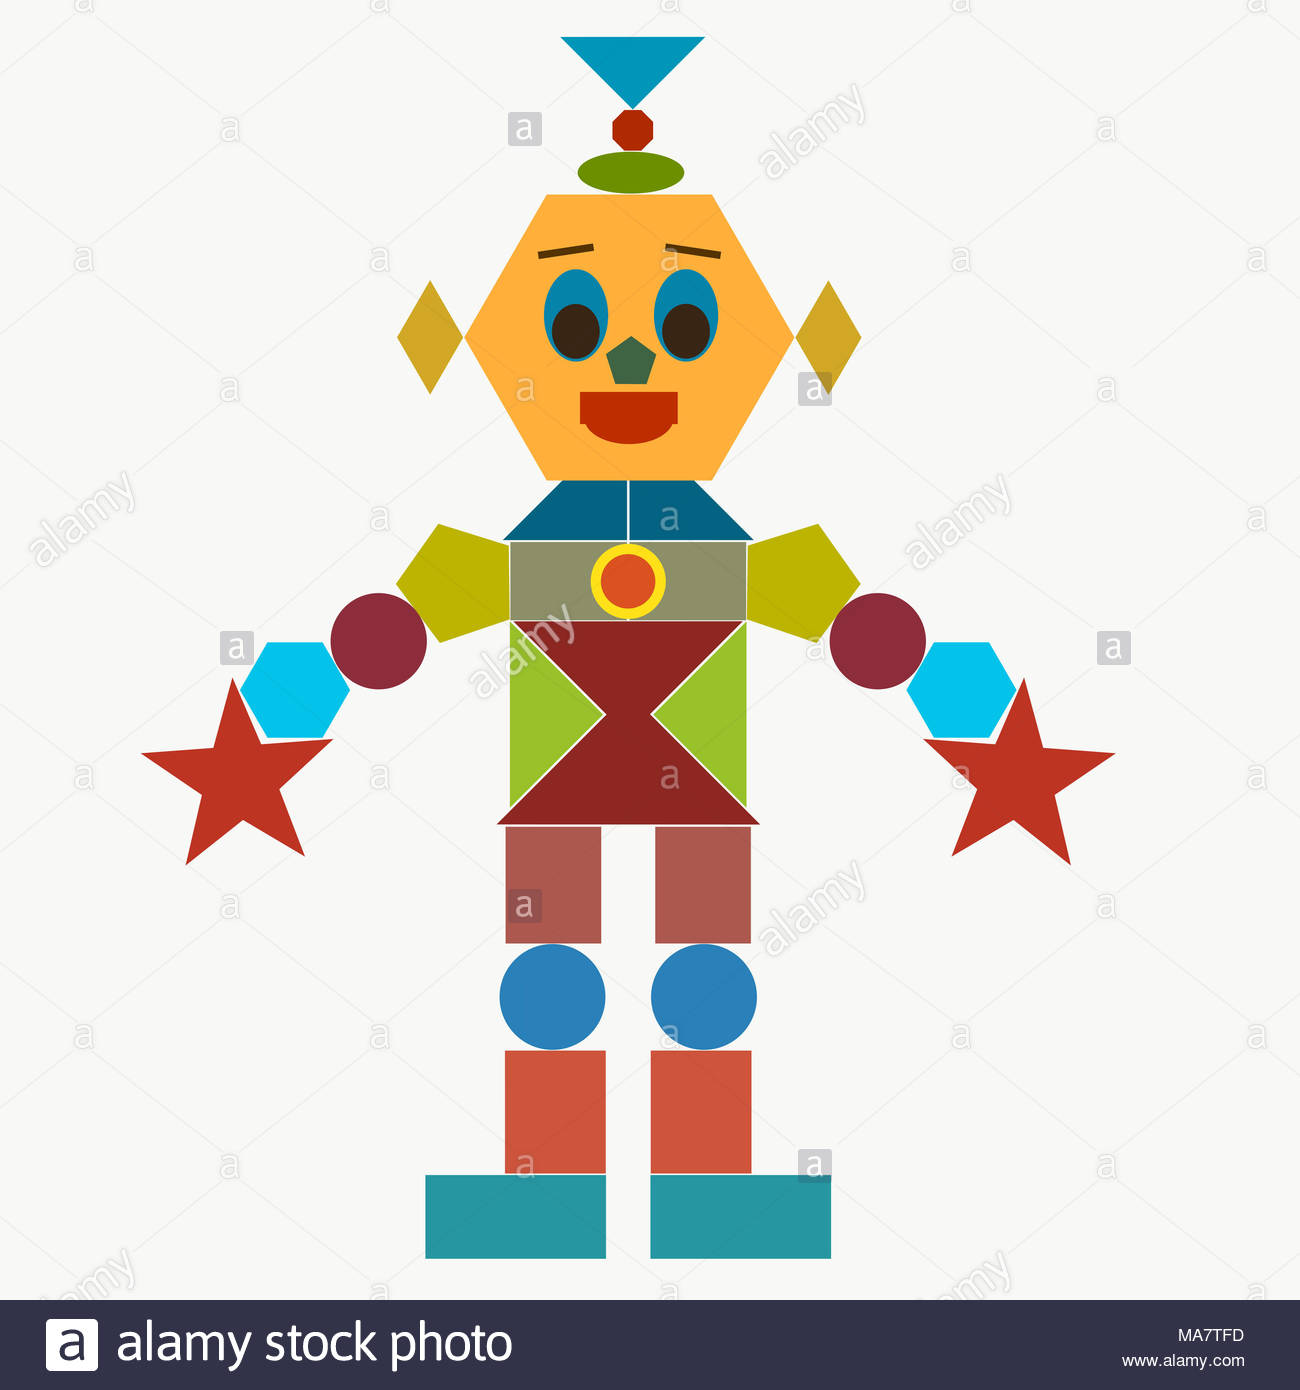 Funny Robot From Geometric Shapes Stock Photo